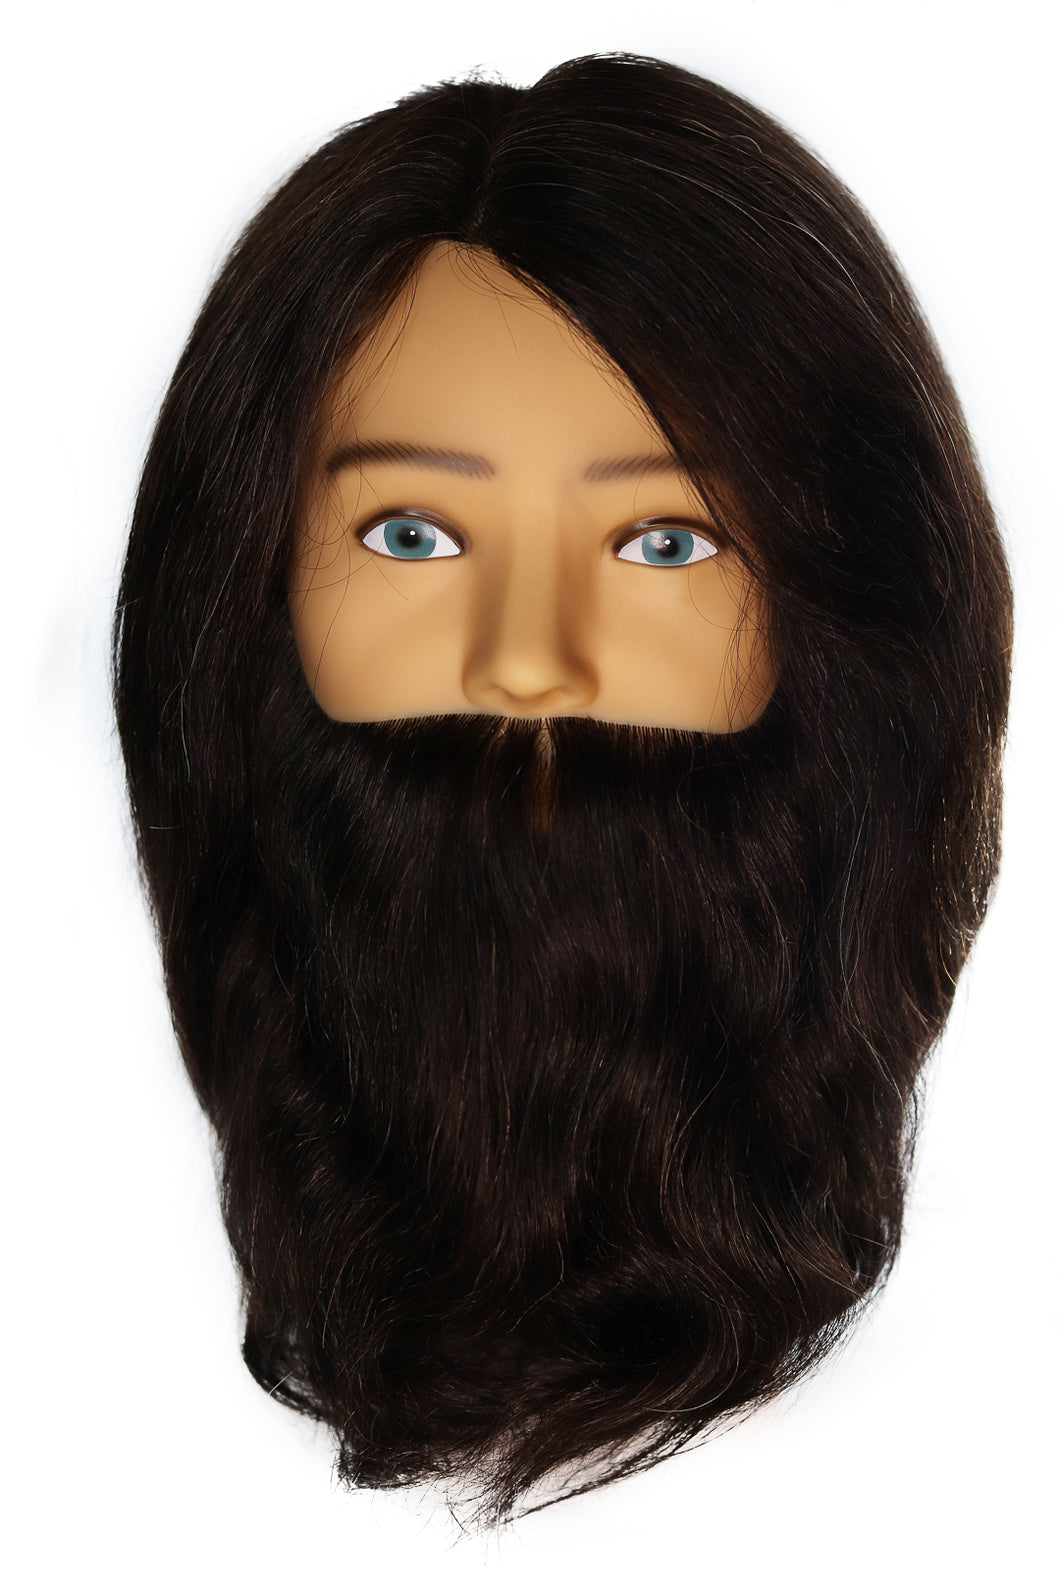 MANNEQUIN HEAD MICHAEL WITH BEARD